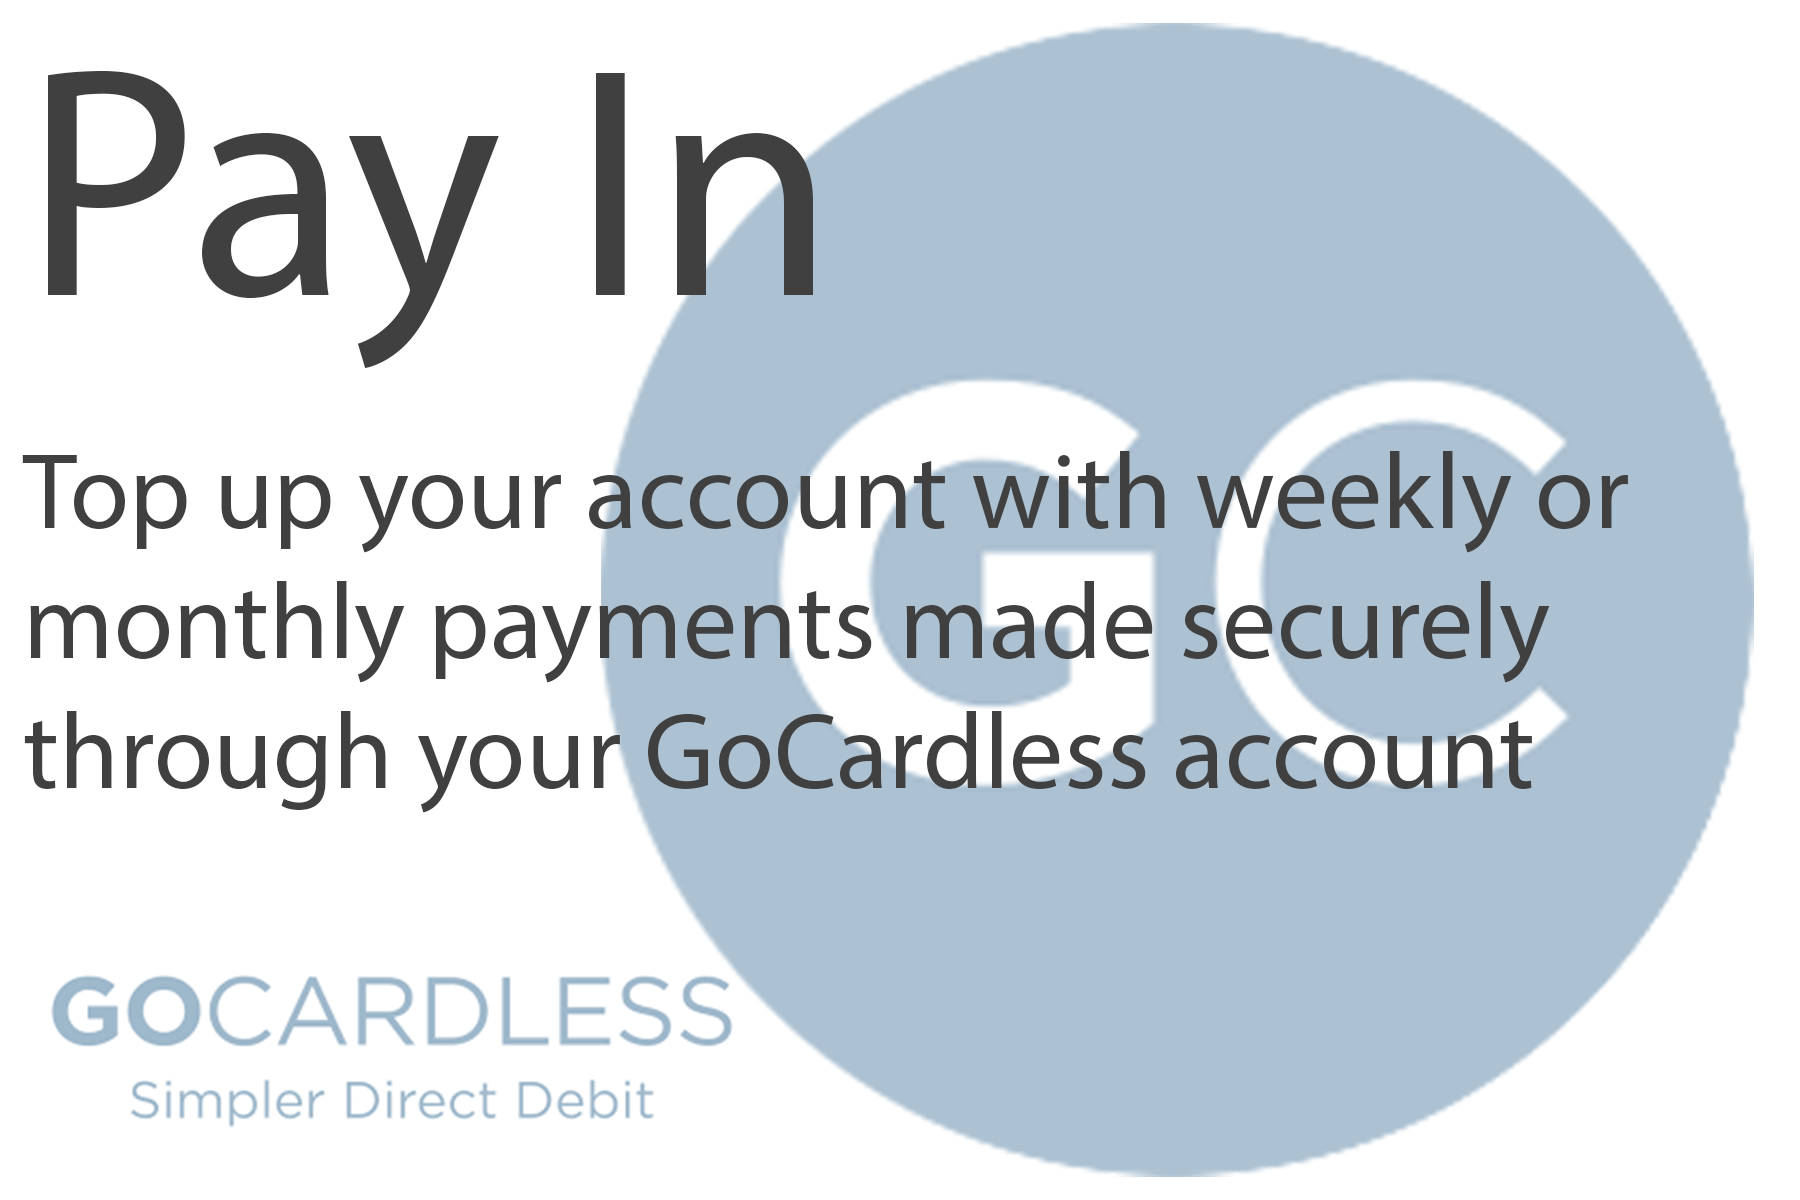 top up ypur account with weekly or monthly payments made securely through your gocardless account